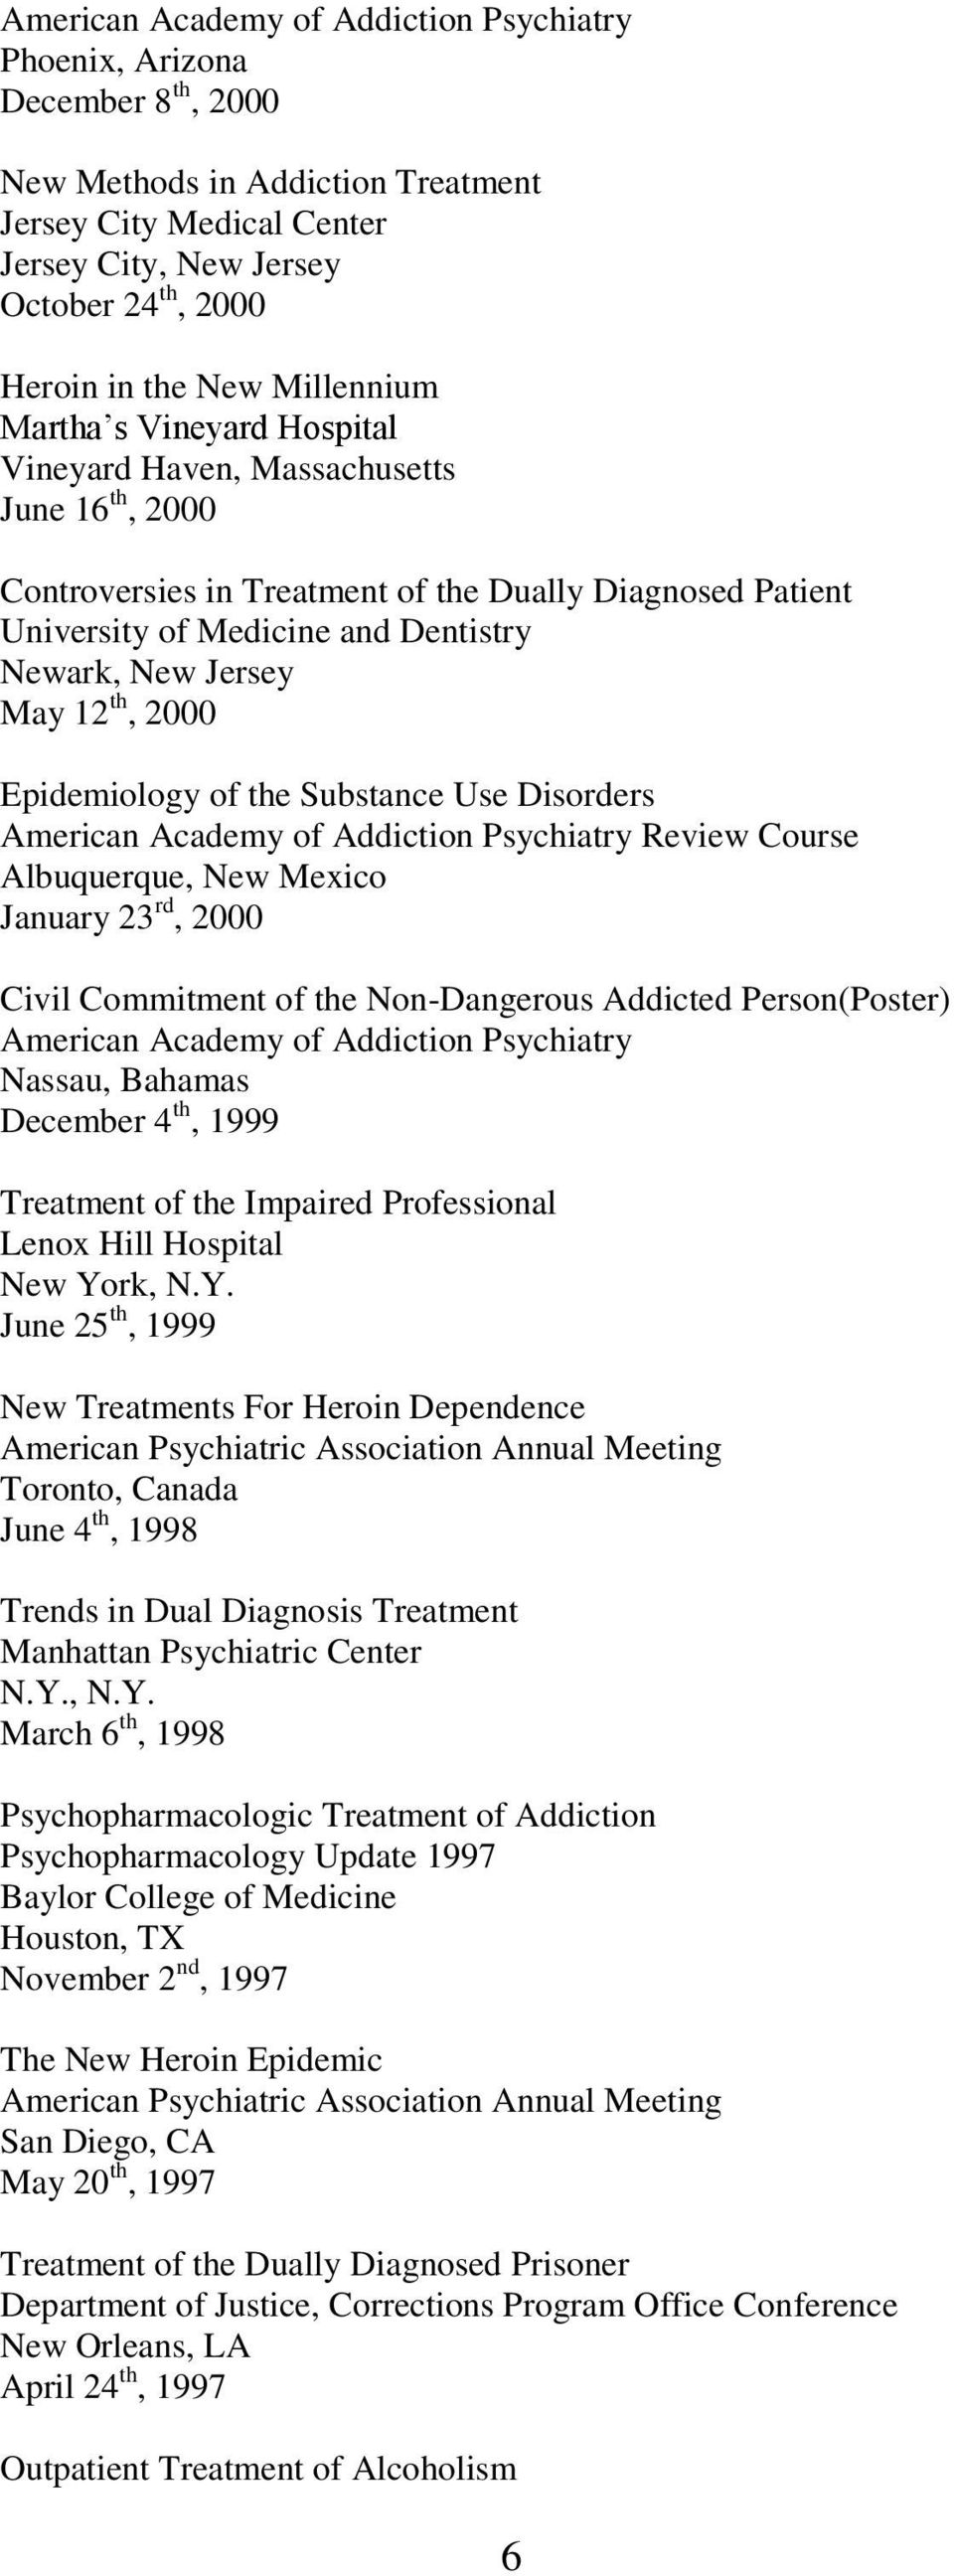 Substance Use Disorders Review Course Albuquerque, New Mexico January 23 rd, 2000 Civil Commitment of the Non-Dangerous Addicted Person(Poster) Nassau, Bahamas December 4 th, 1999 Treatment of the